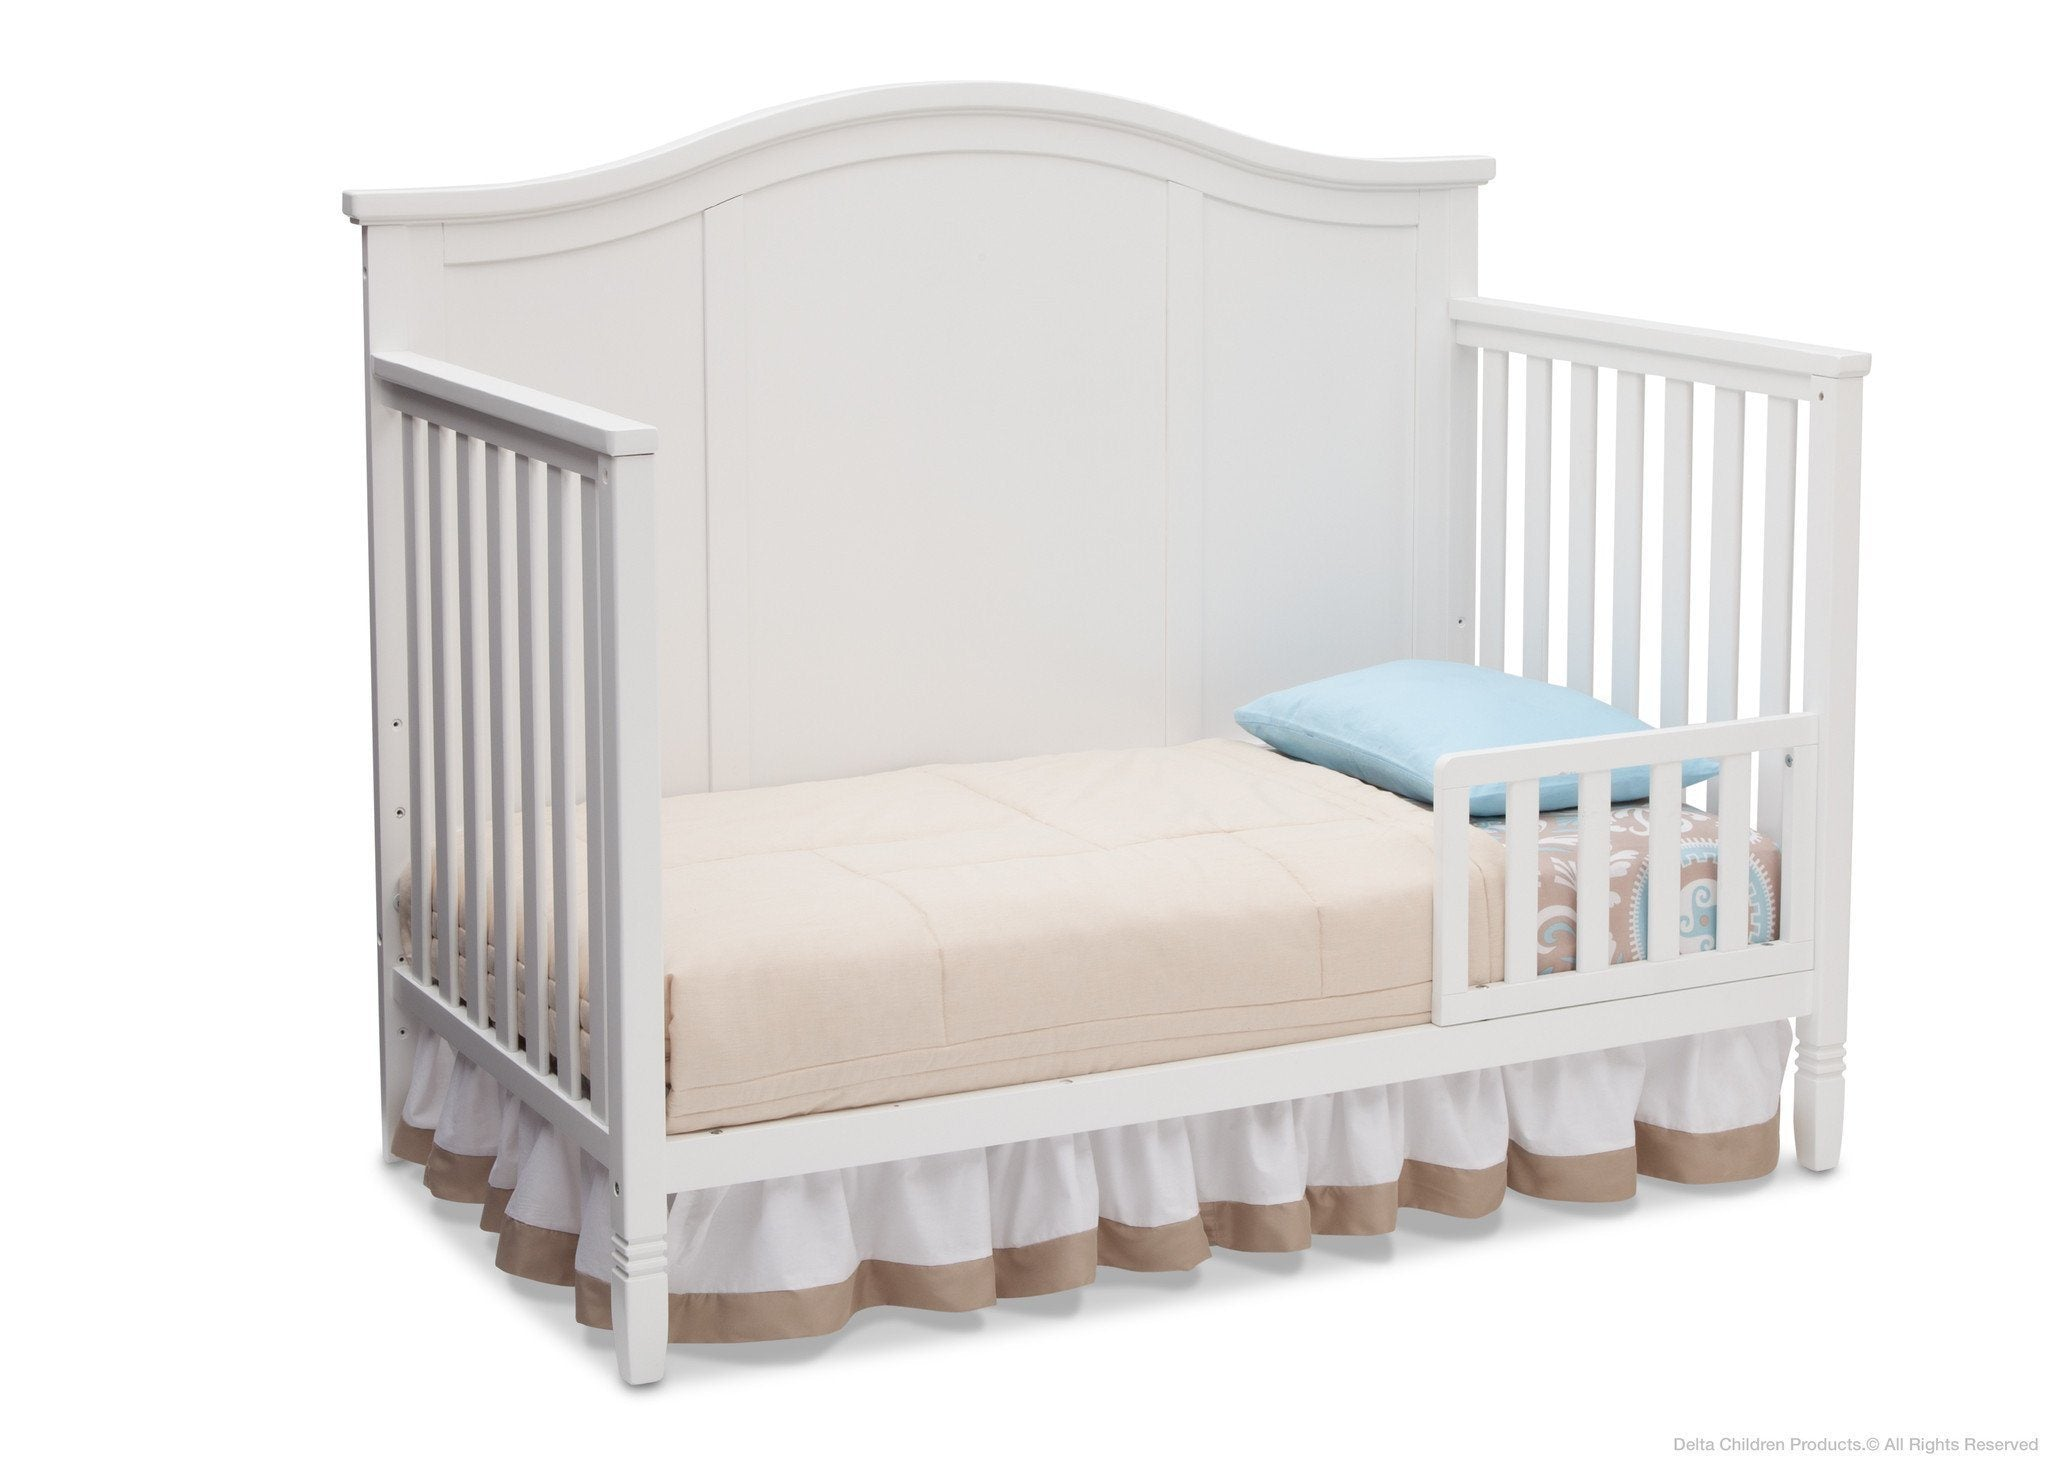 Delta Children White (100) Madrid 4-in-1 Crib, Toddler Bed Silo View